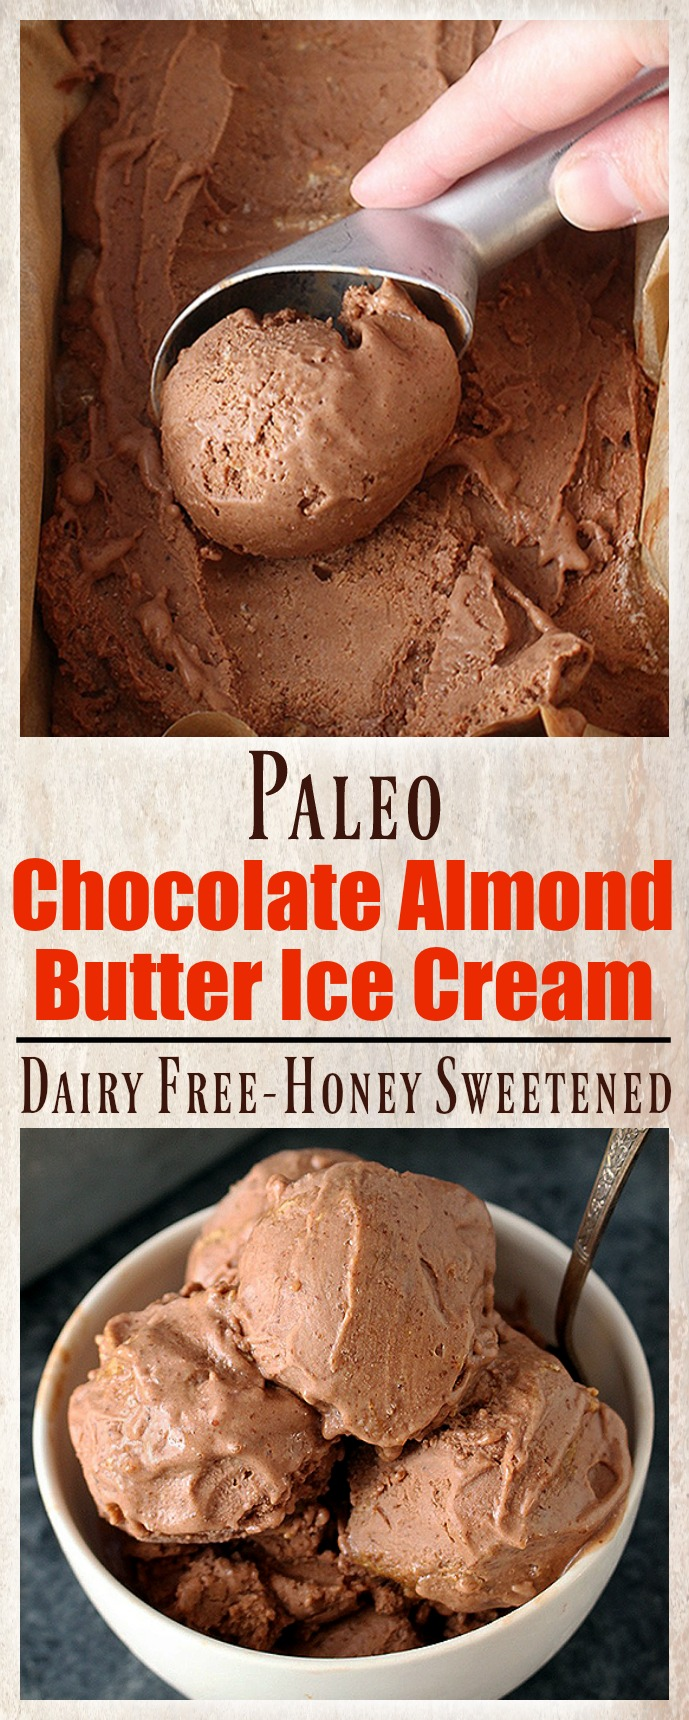 Paleo Chocolate Almond Butter Ice Cream - Jay's Baking Me Crazy